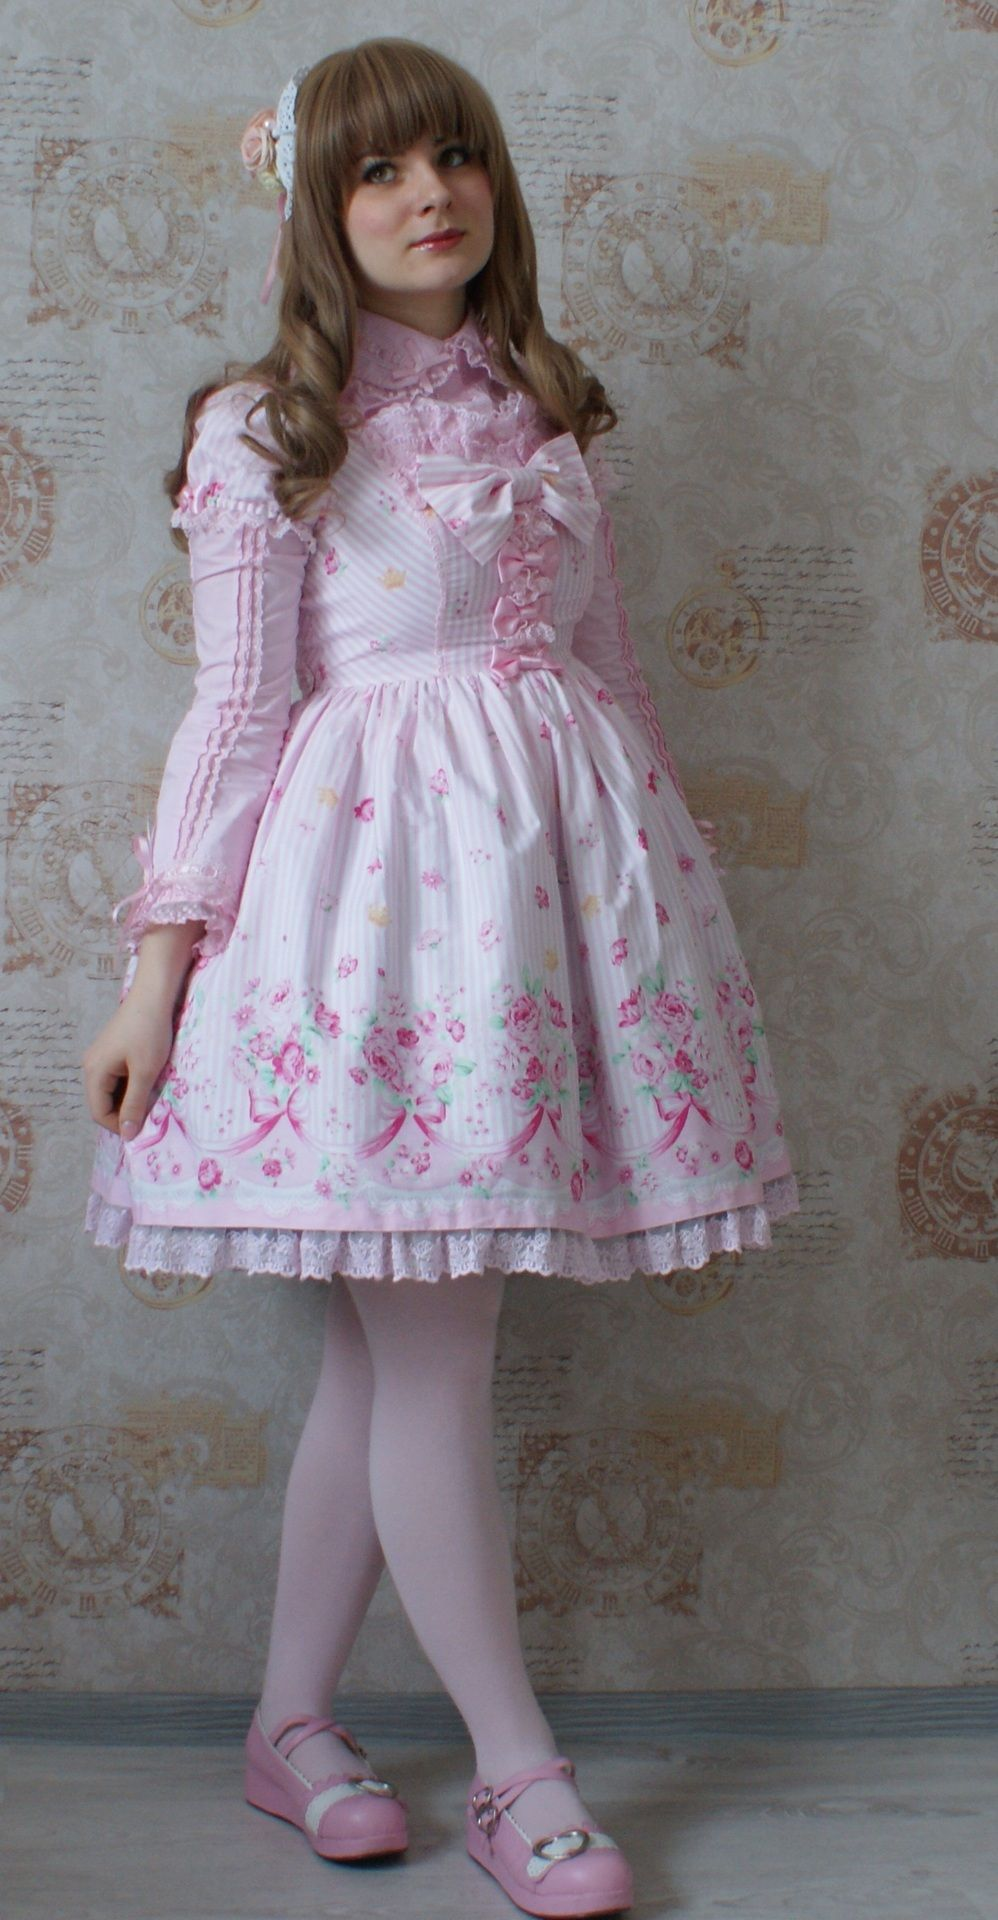 Frilly sissy tumblr